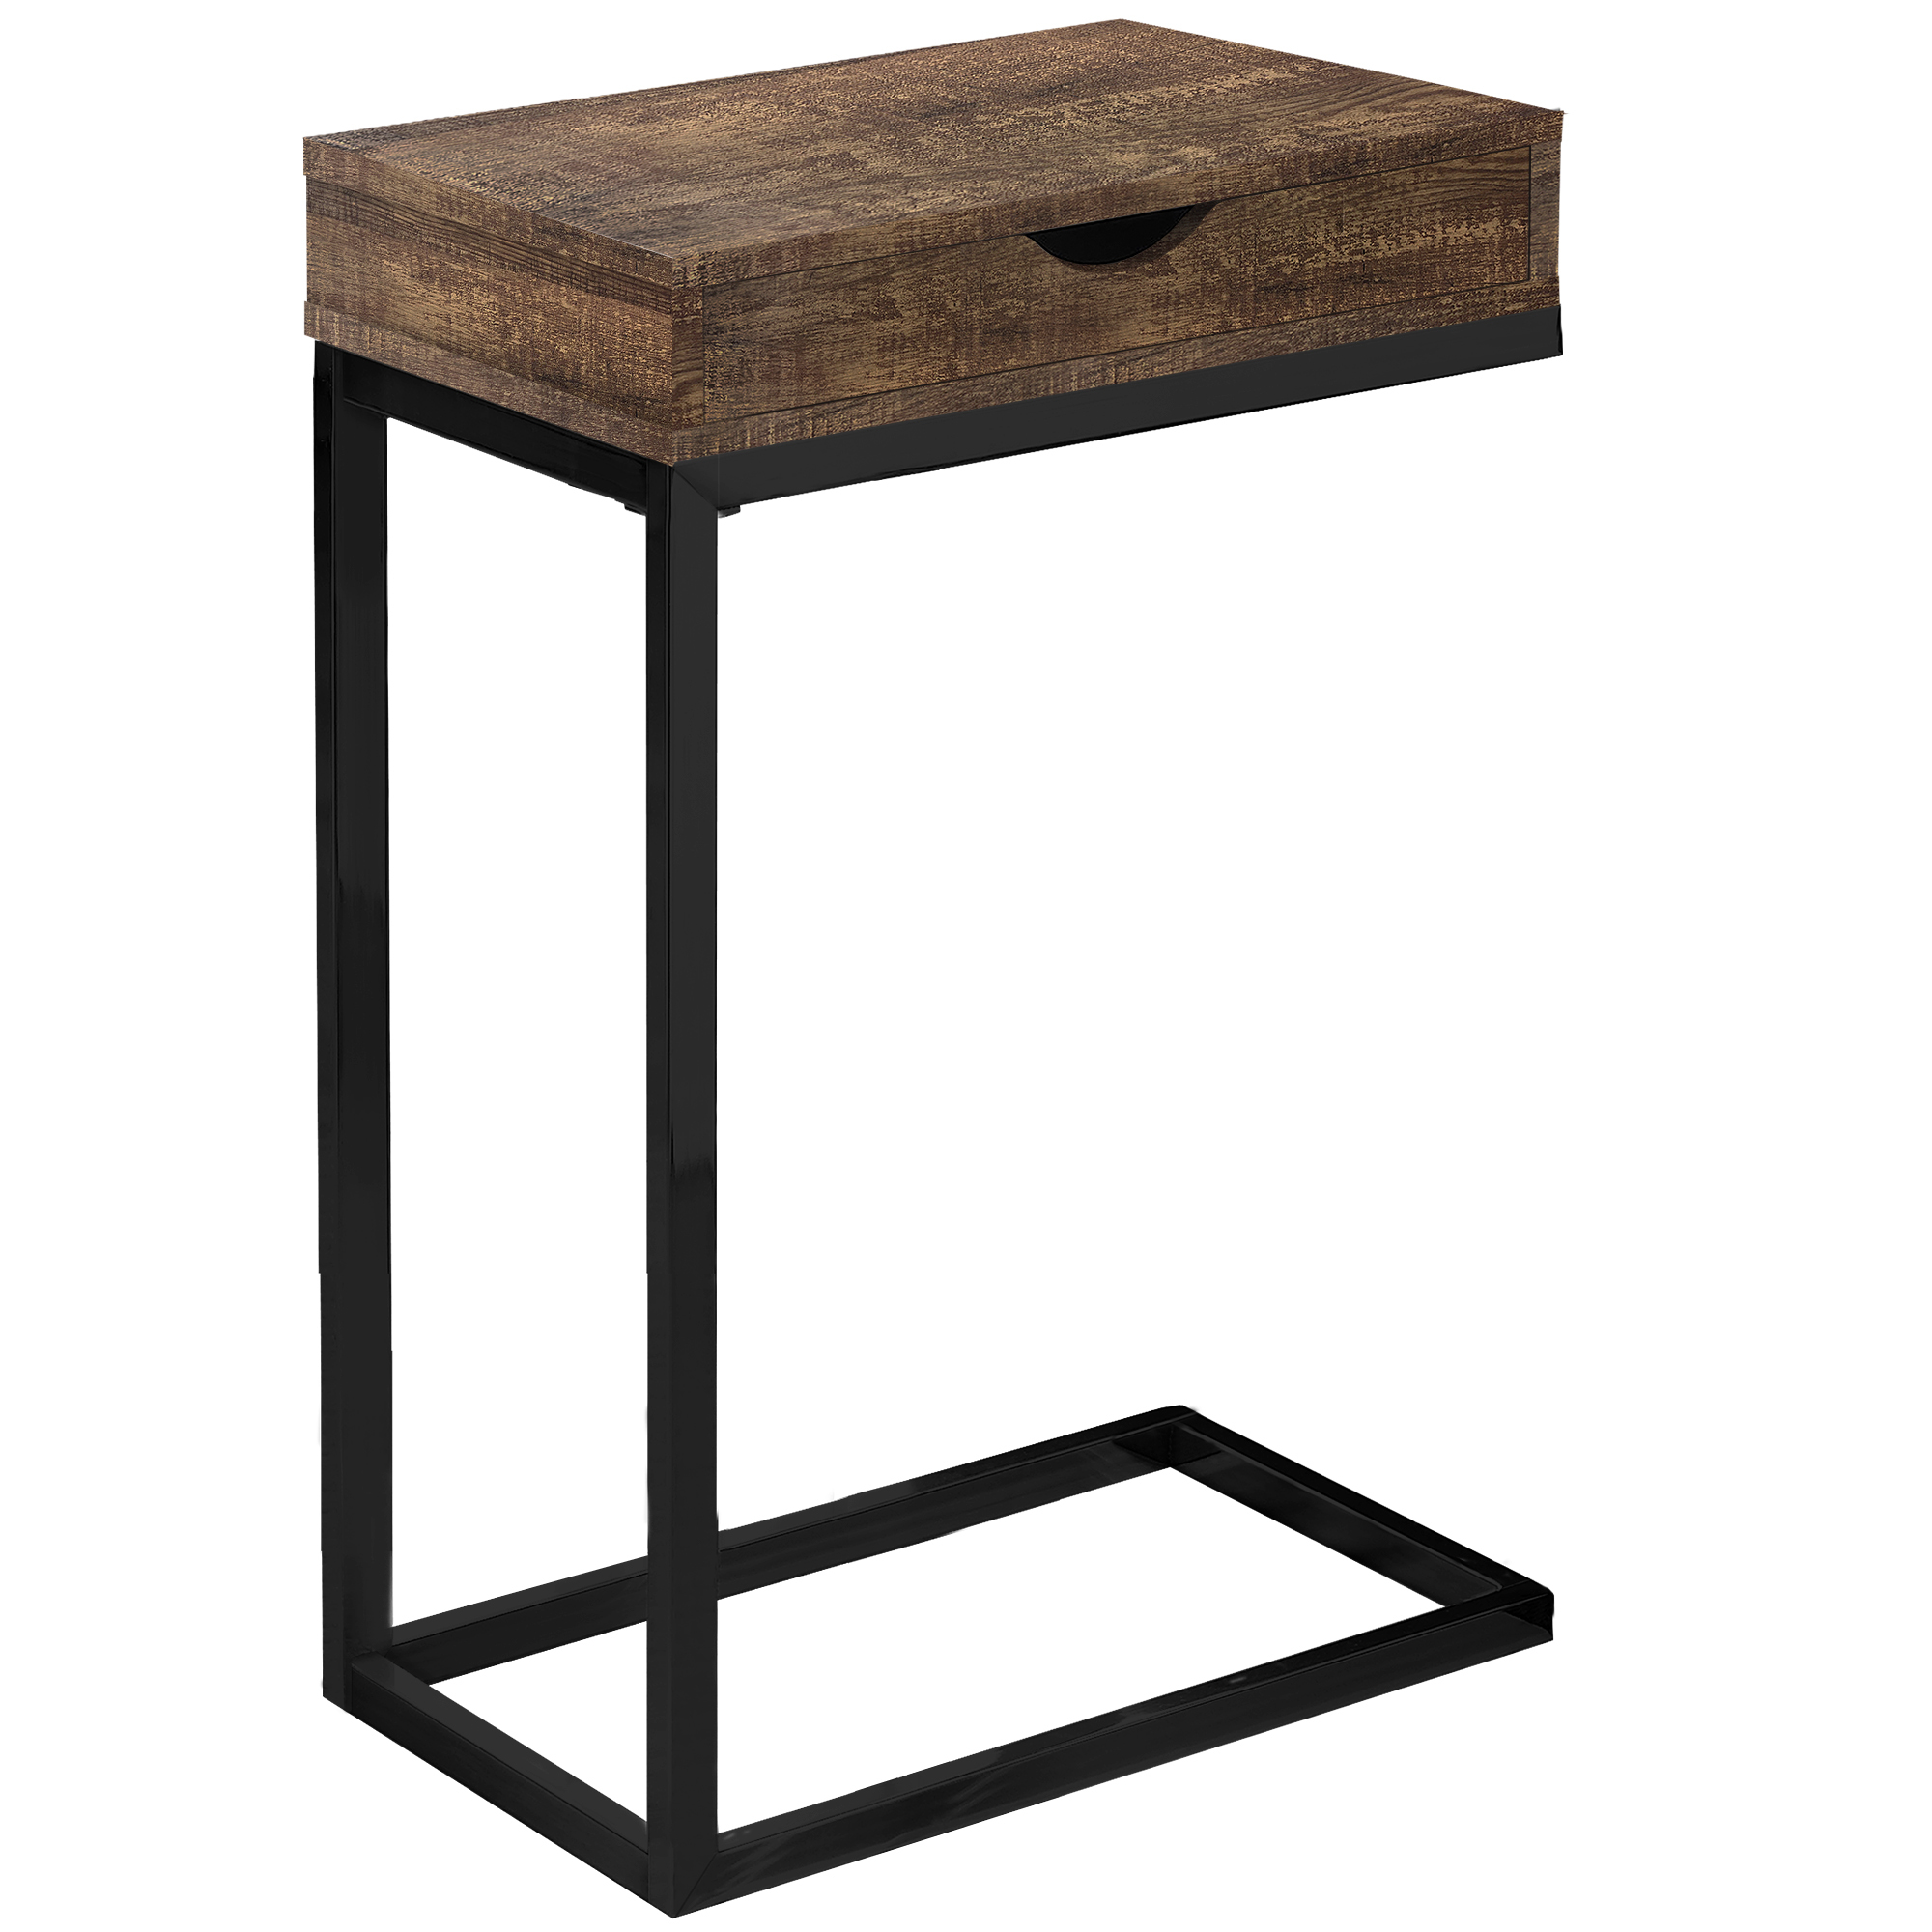 """10.25"""" x 15.75"""" x 24.5"""" Brown Finish Drawer and Black Metal Accent Table"""